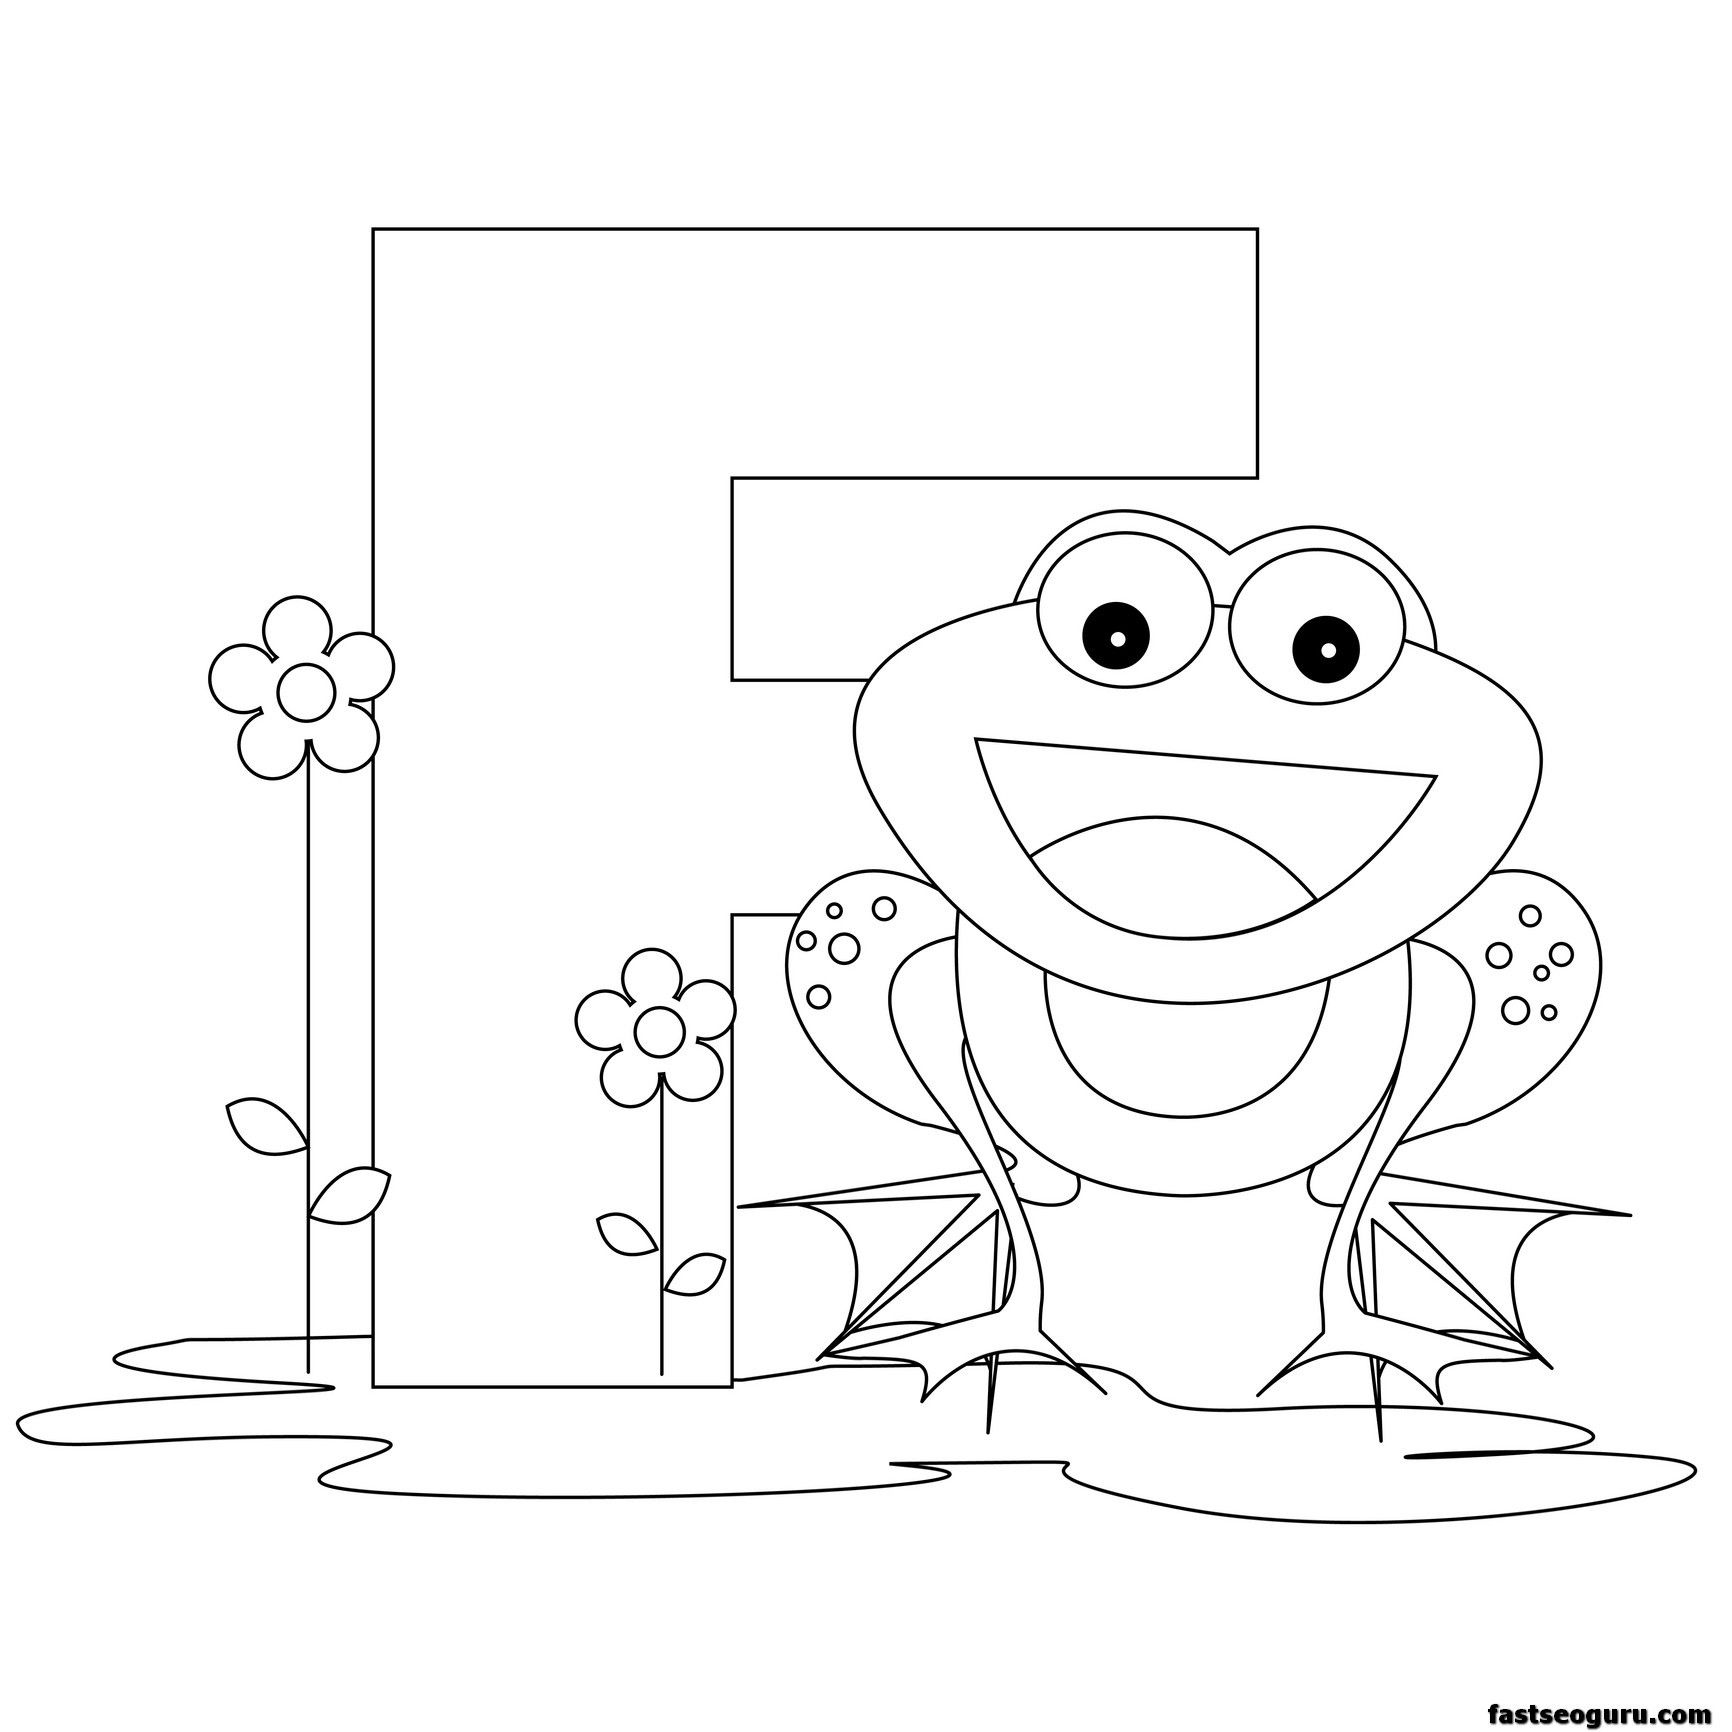 Printable Animal Alphabet worksheets Letter F For Frog ...